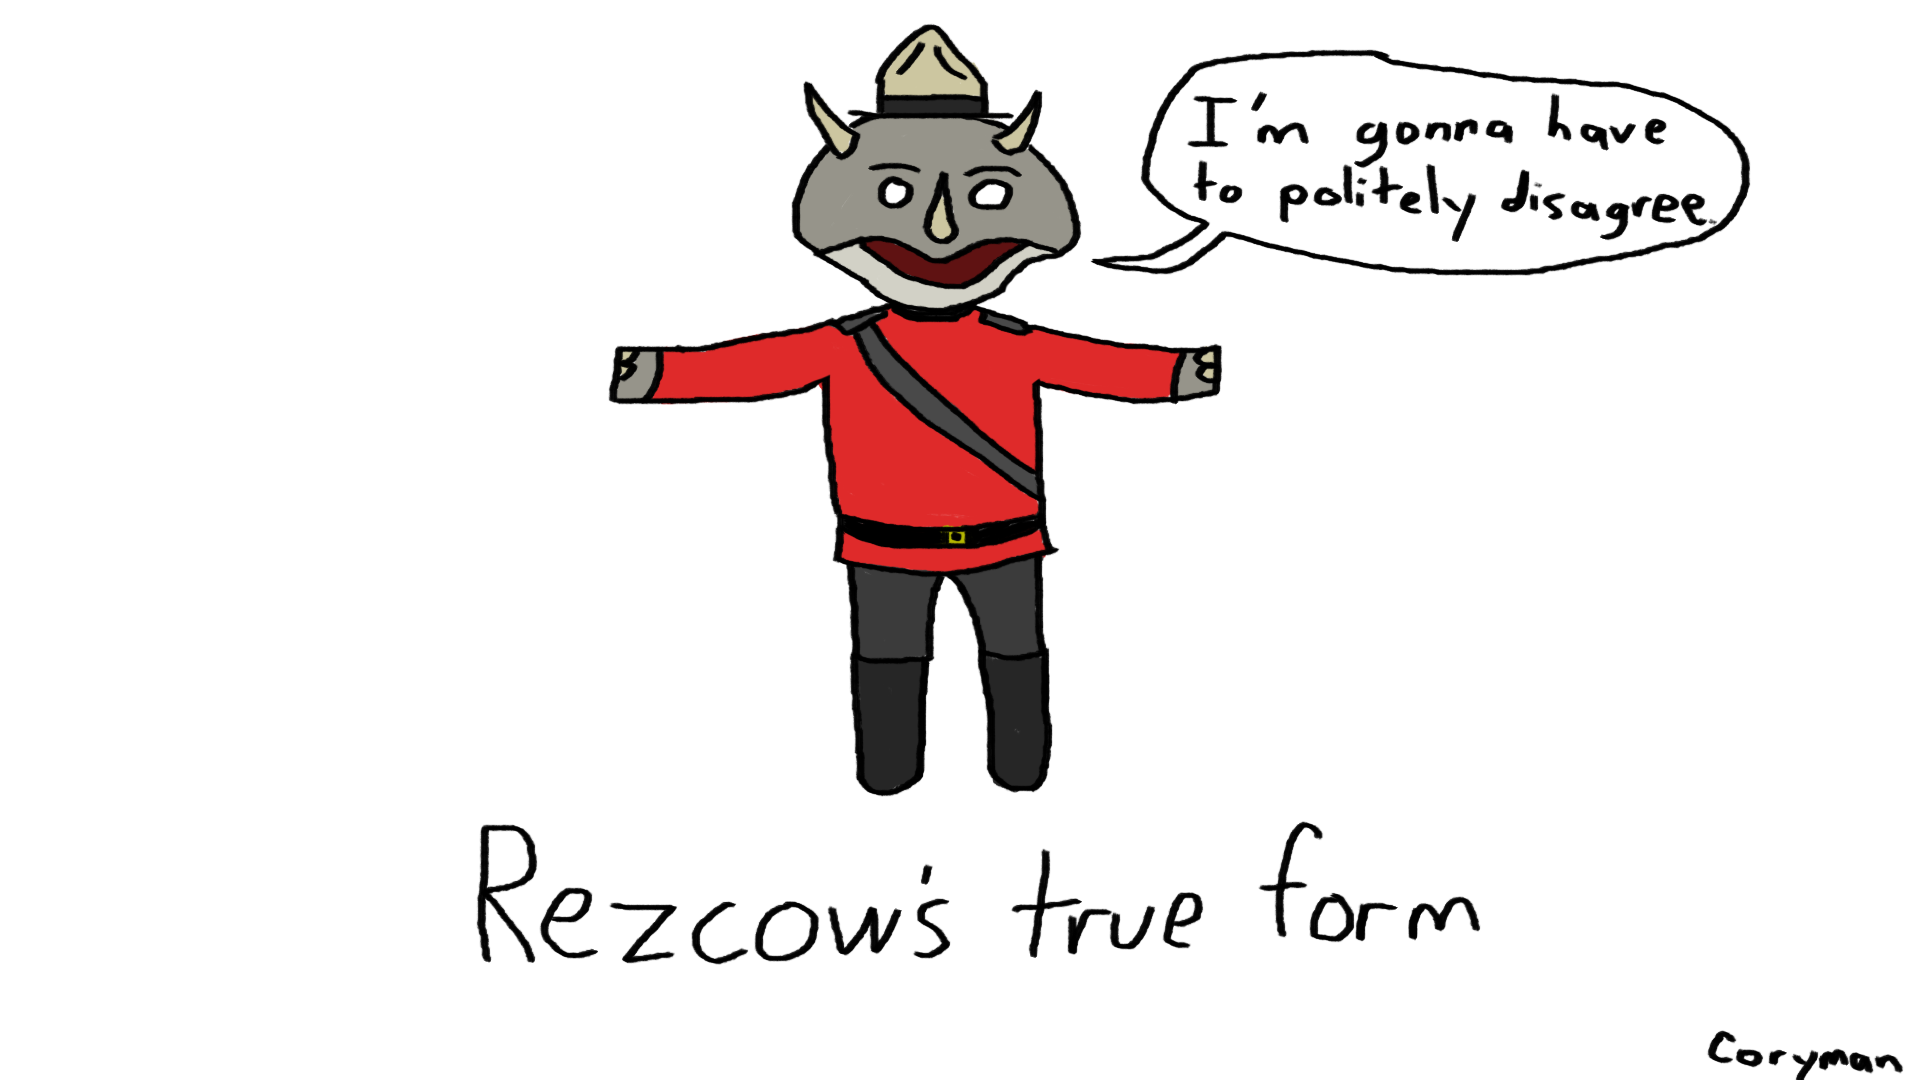 Royal Canadian Mounted Rezcow.png